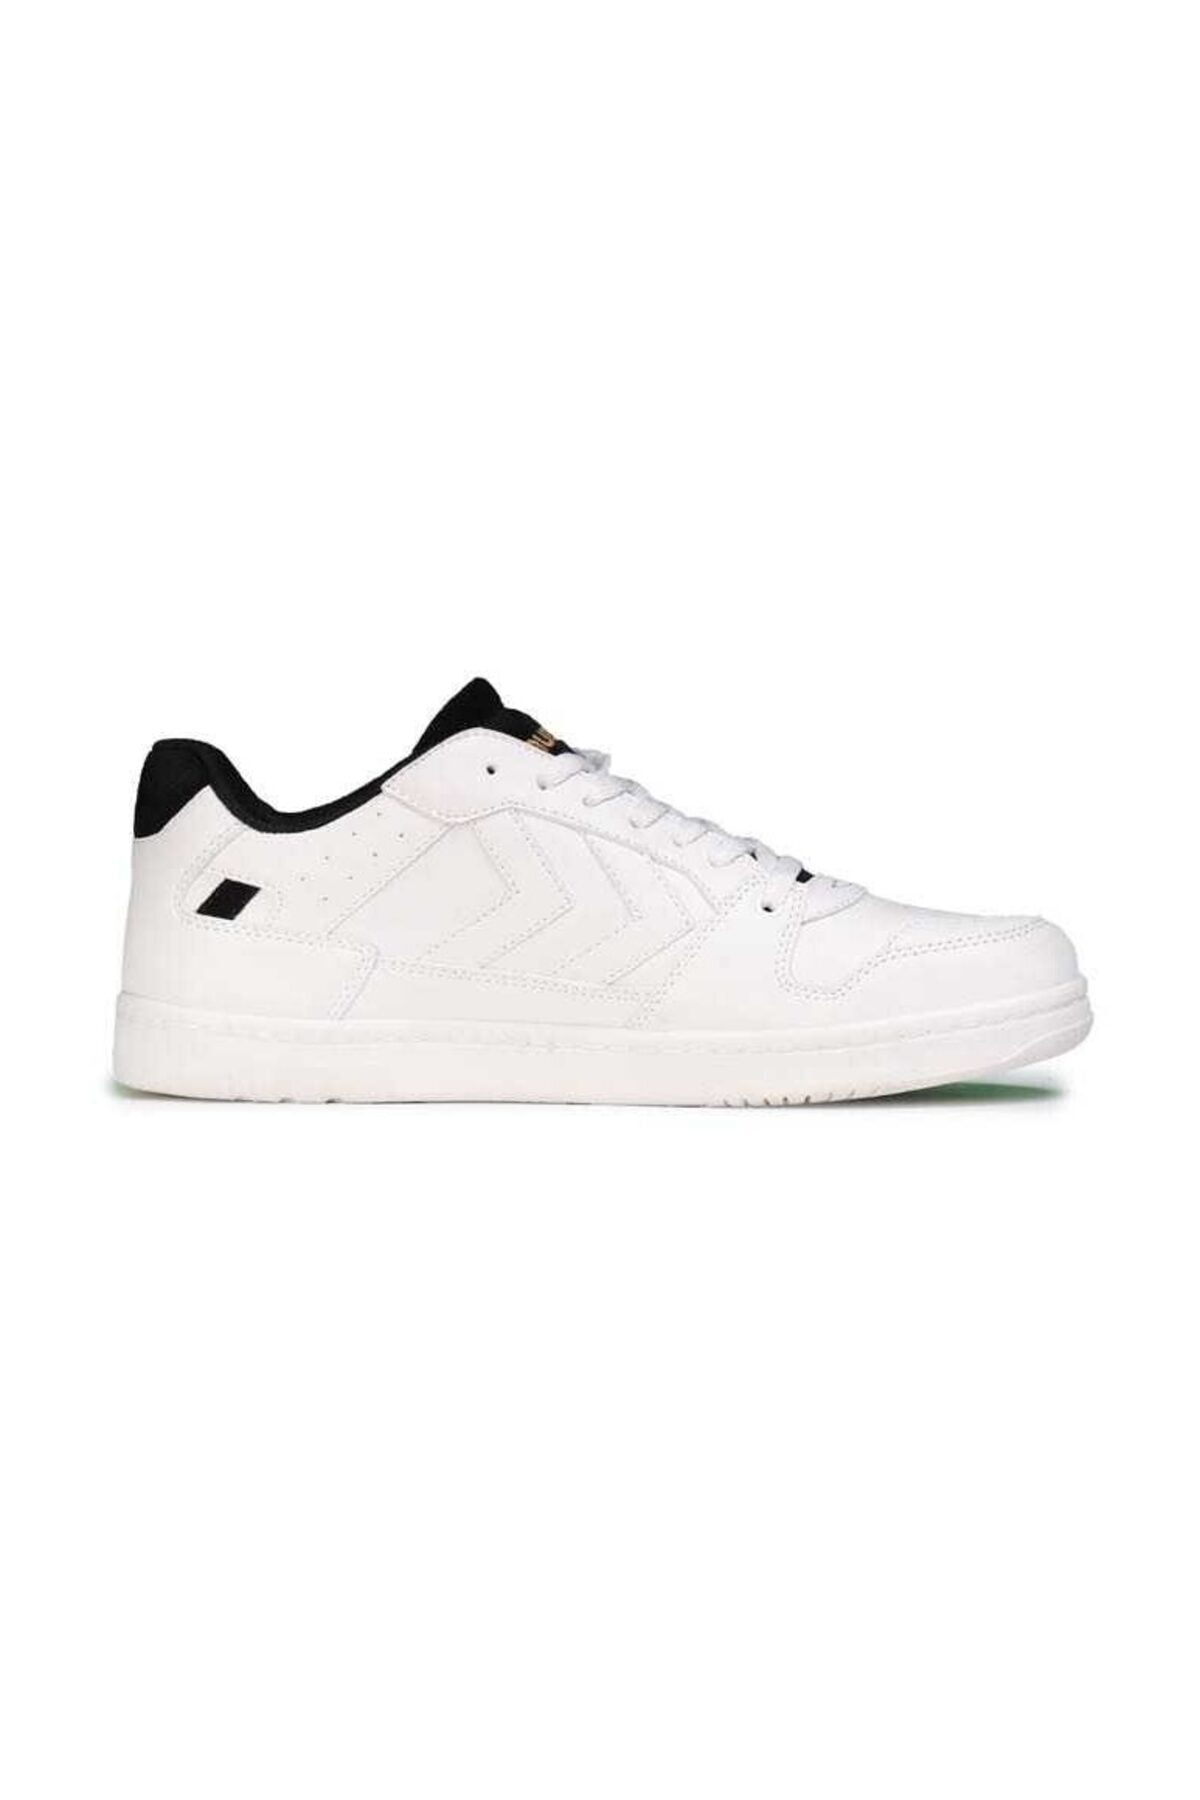 HUMMEL POWER PLAY LOW 1